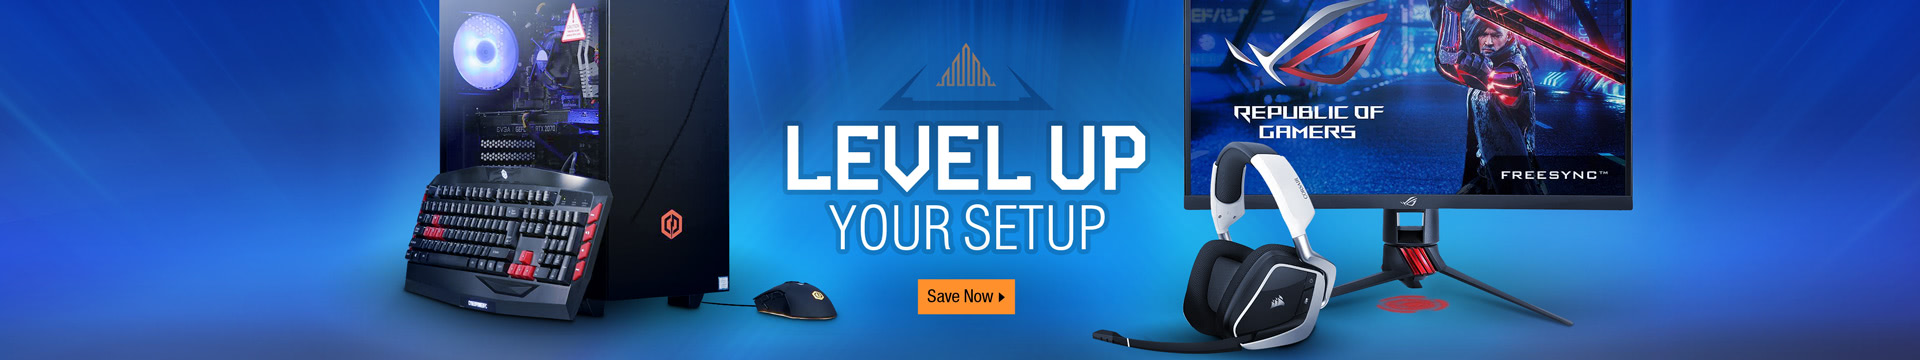 Level Up Your Setup